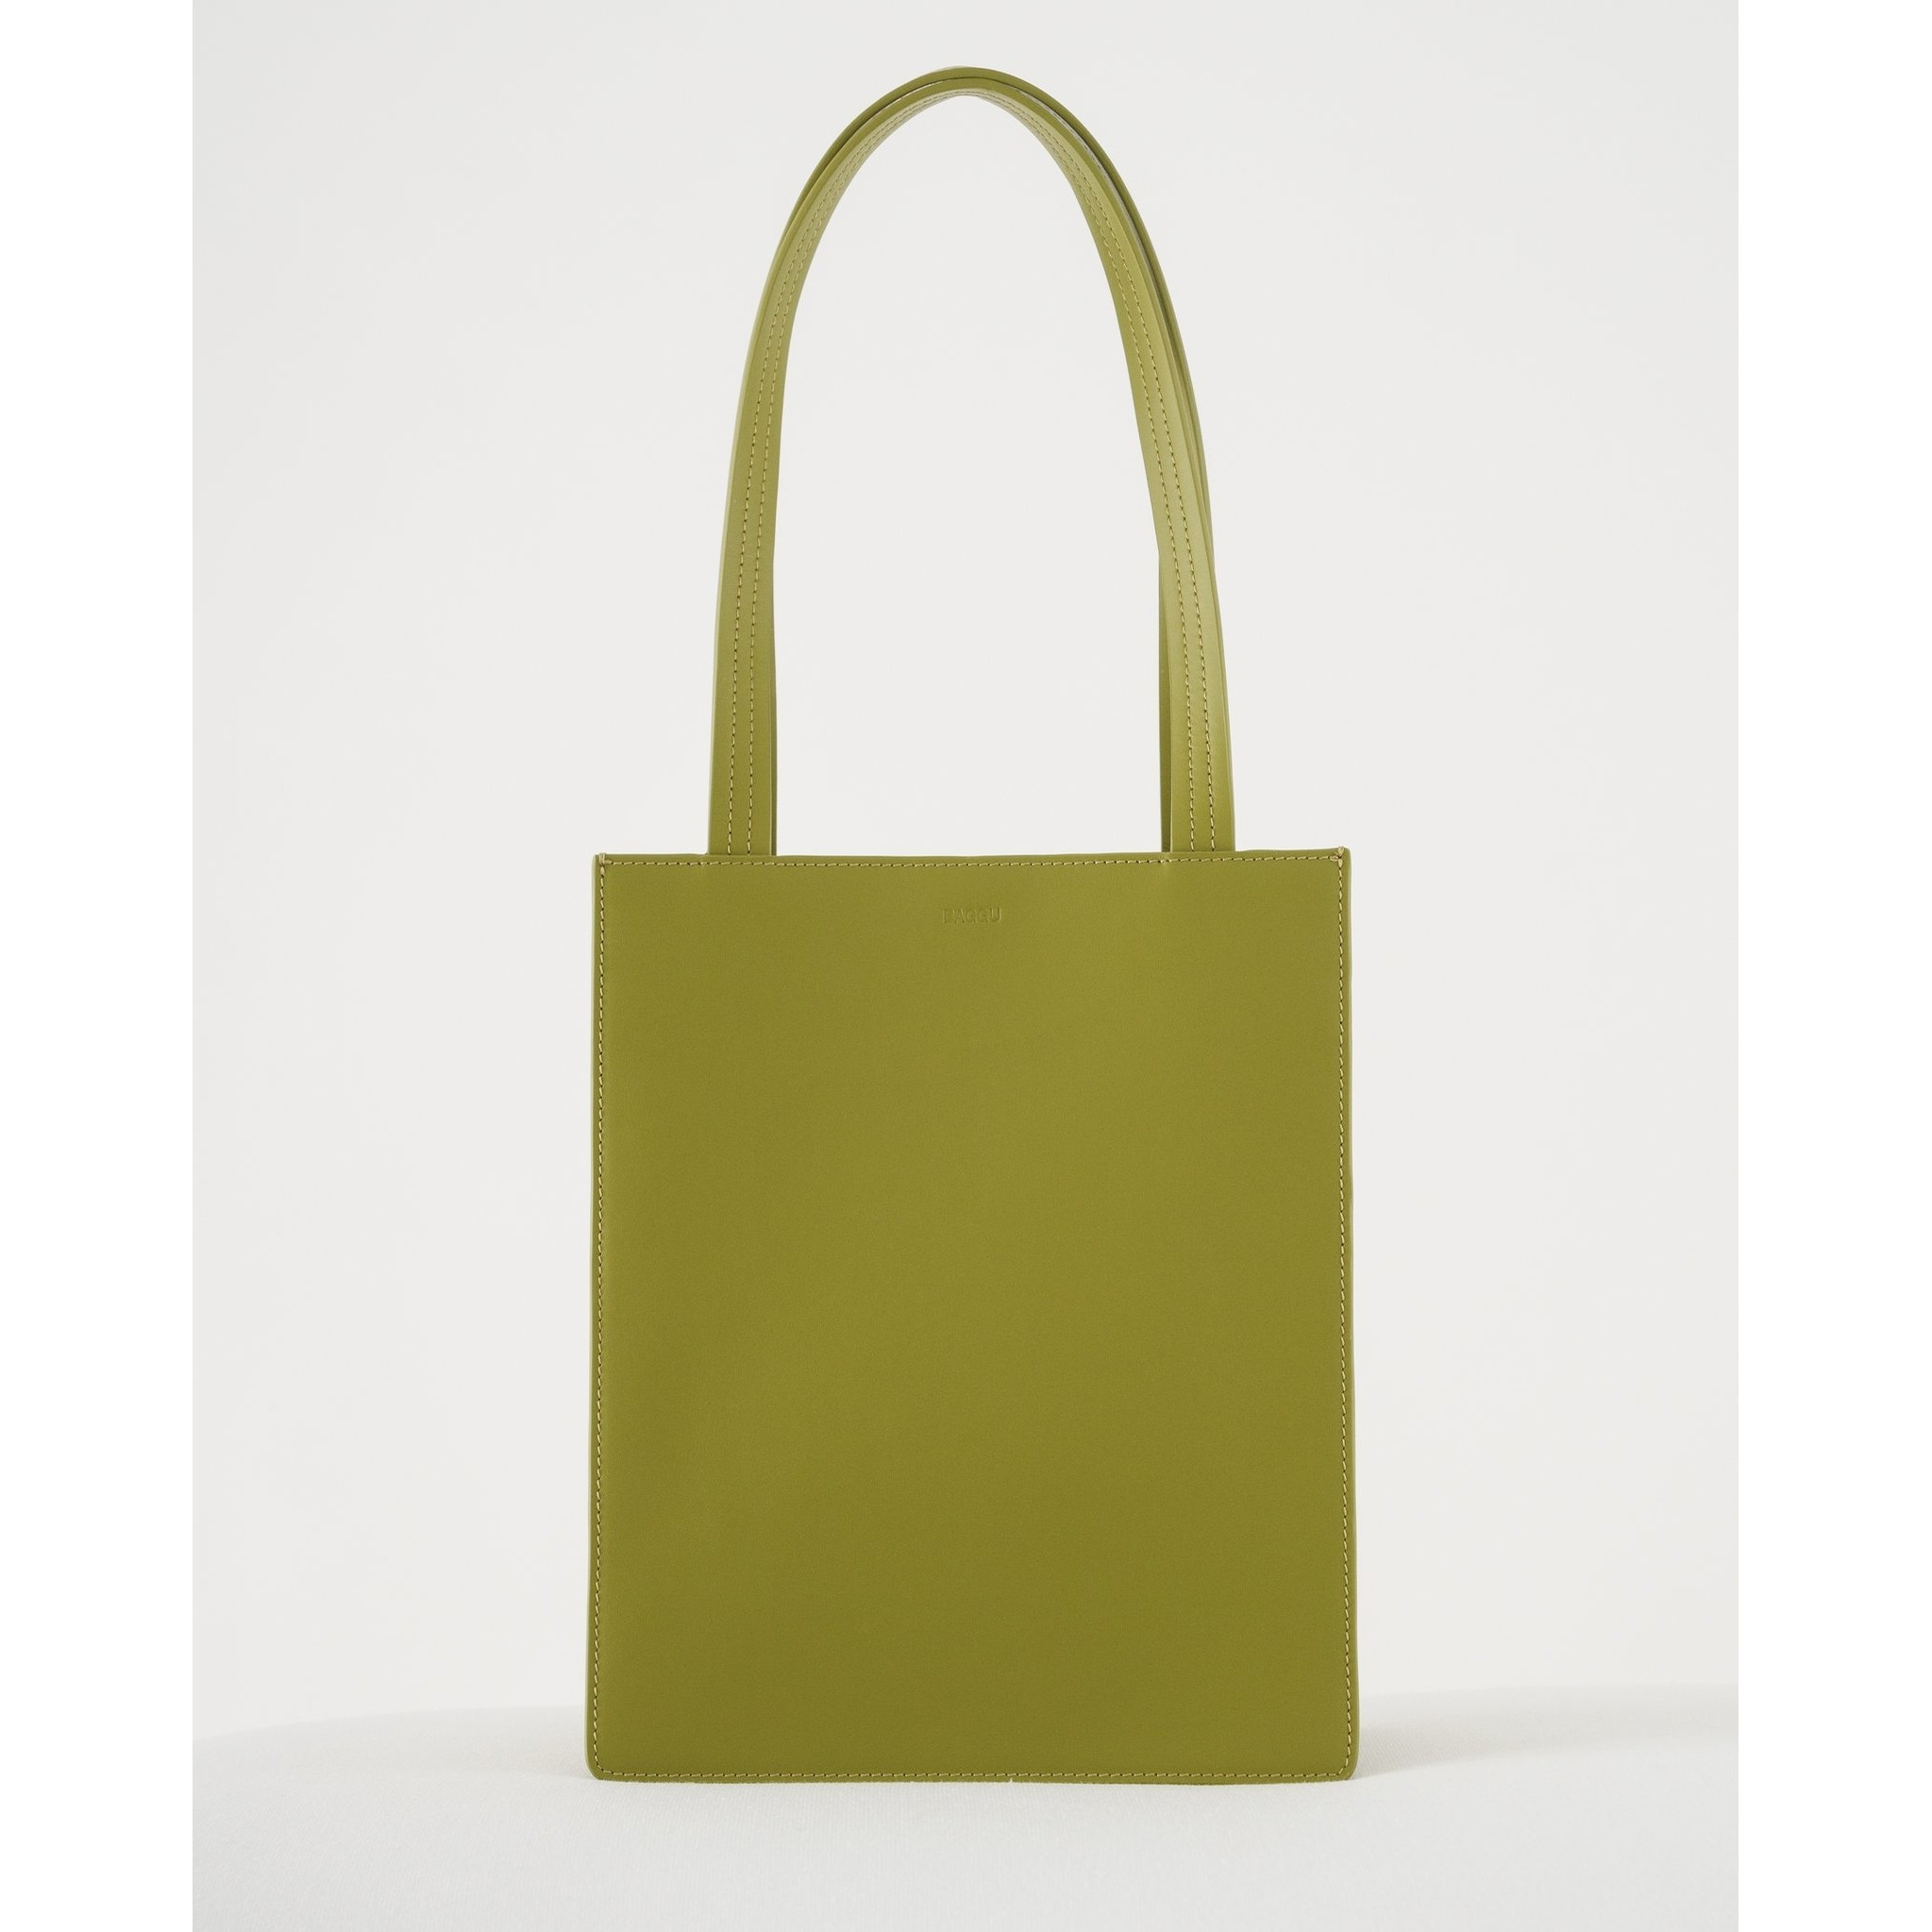 Medium Leather Tote: Spanish Moss